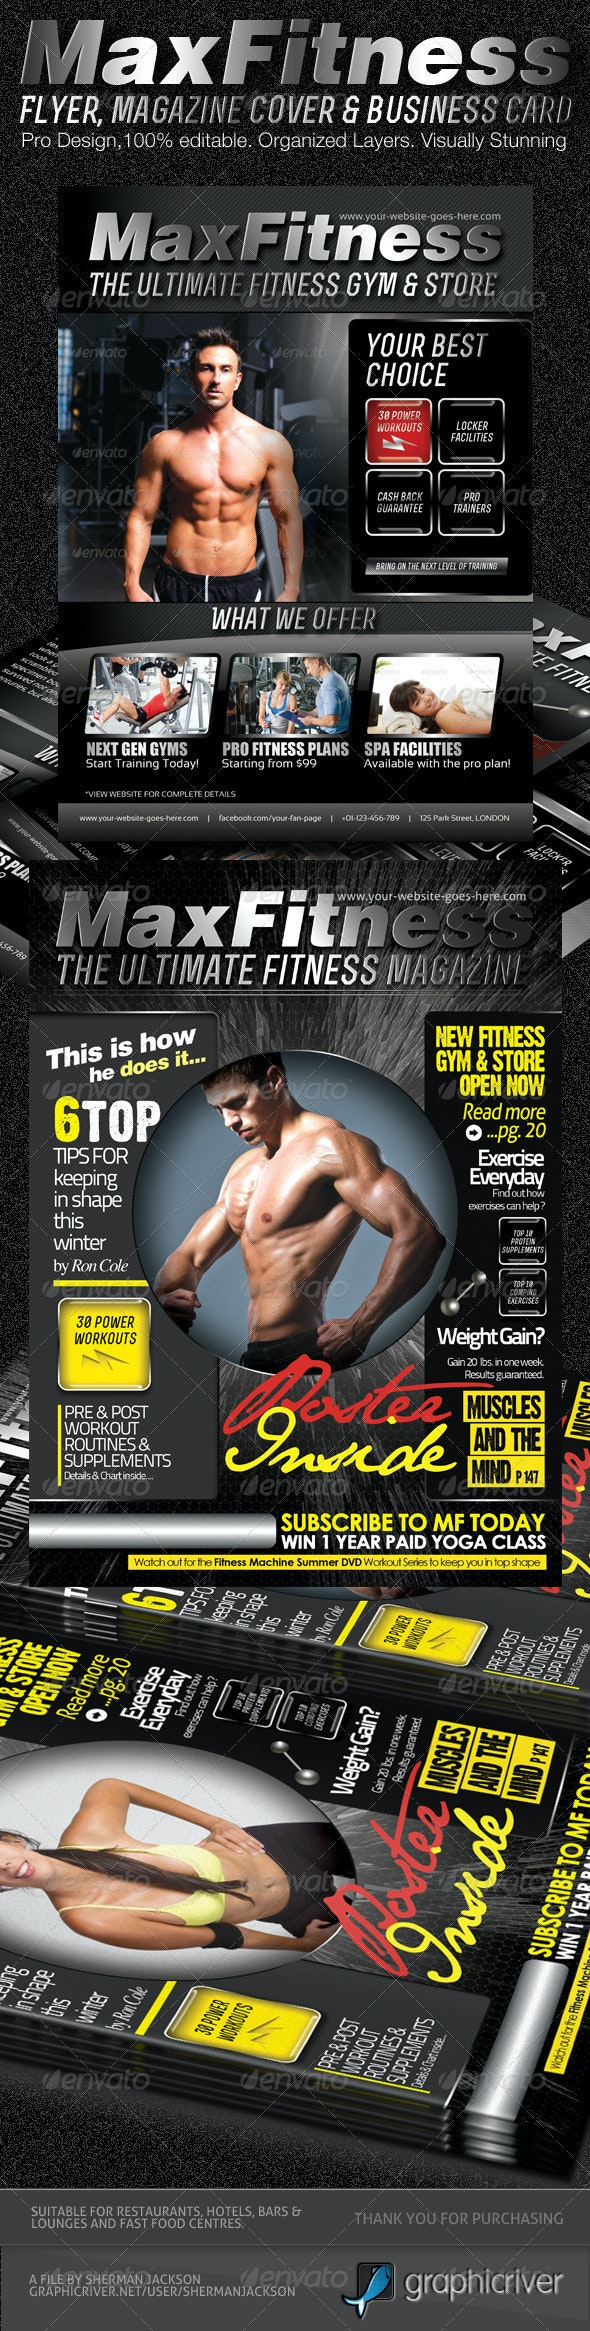 MaX Fitness Flyer & Magazine Cover Template - Commerce Flyers